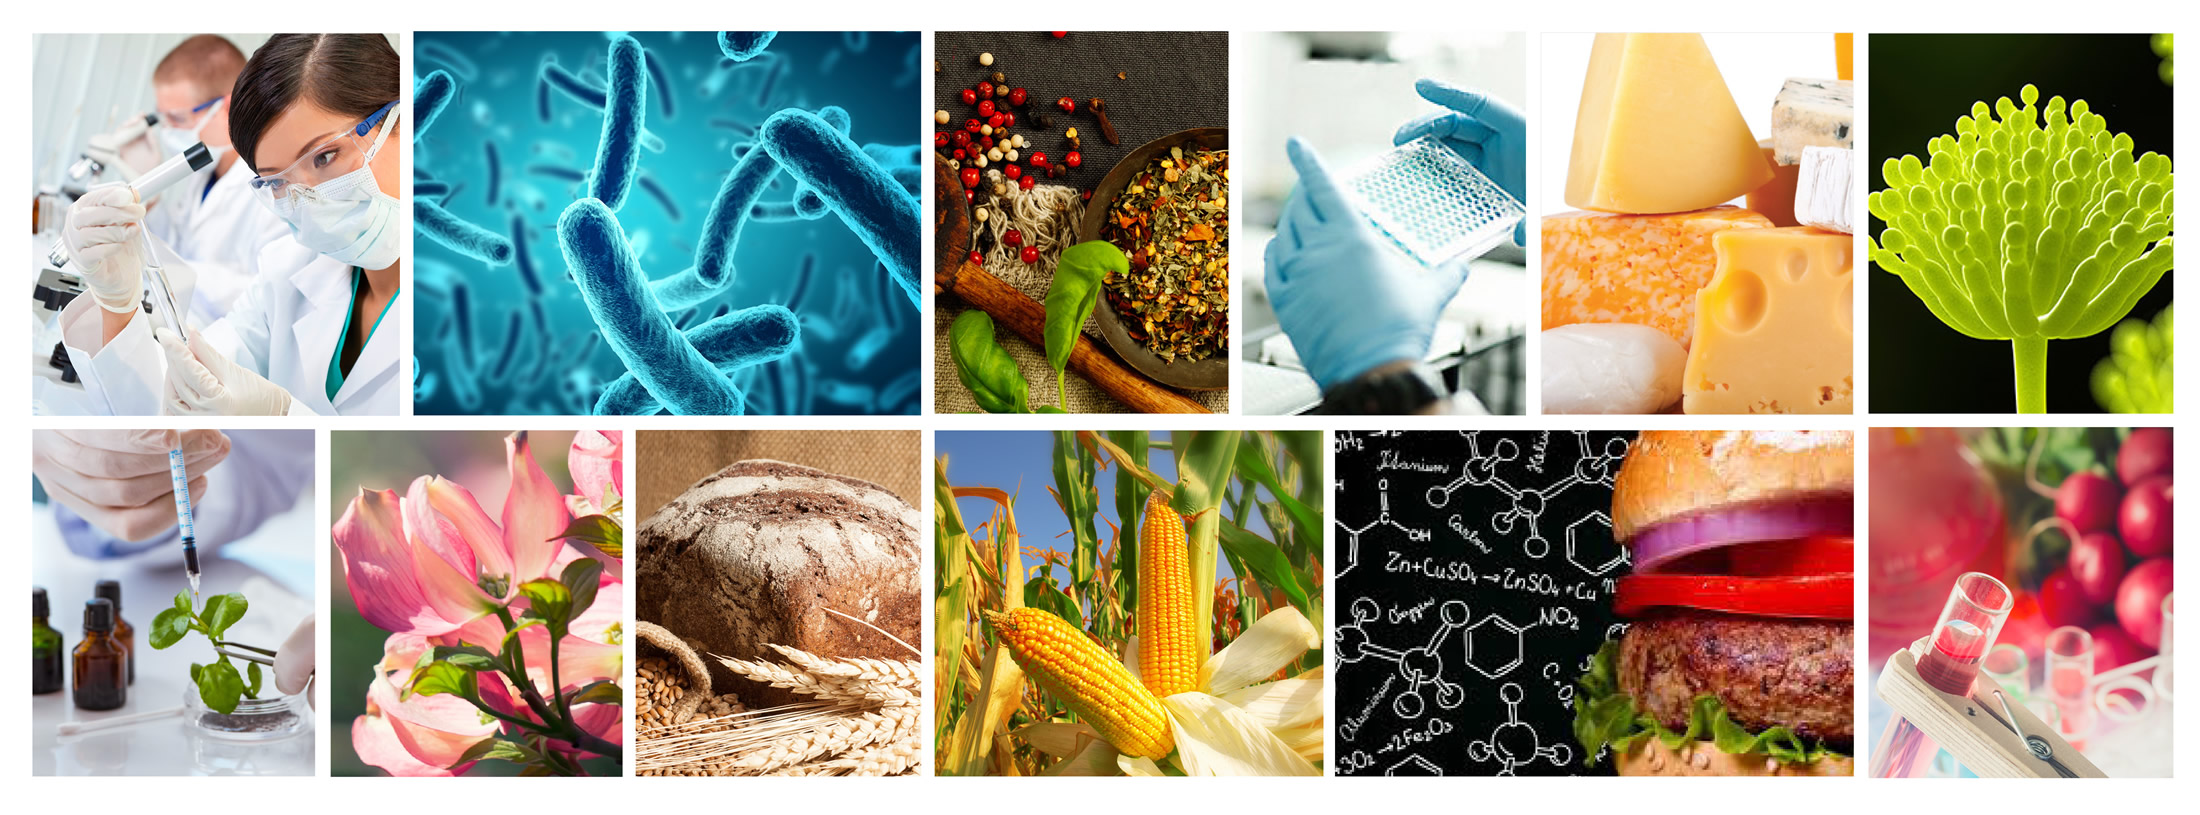 a grouping of photos of different industries of microbial enzyme production fields